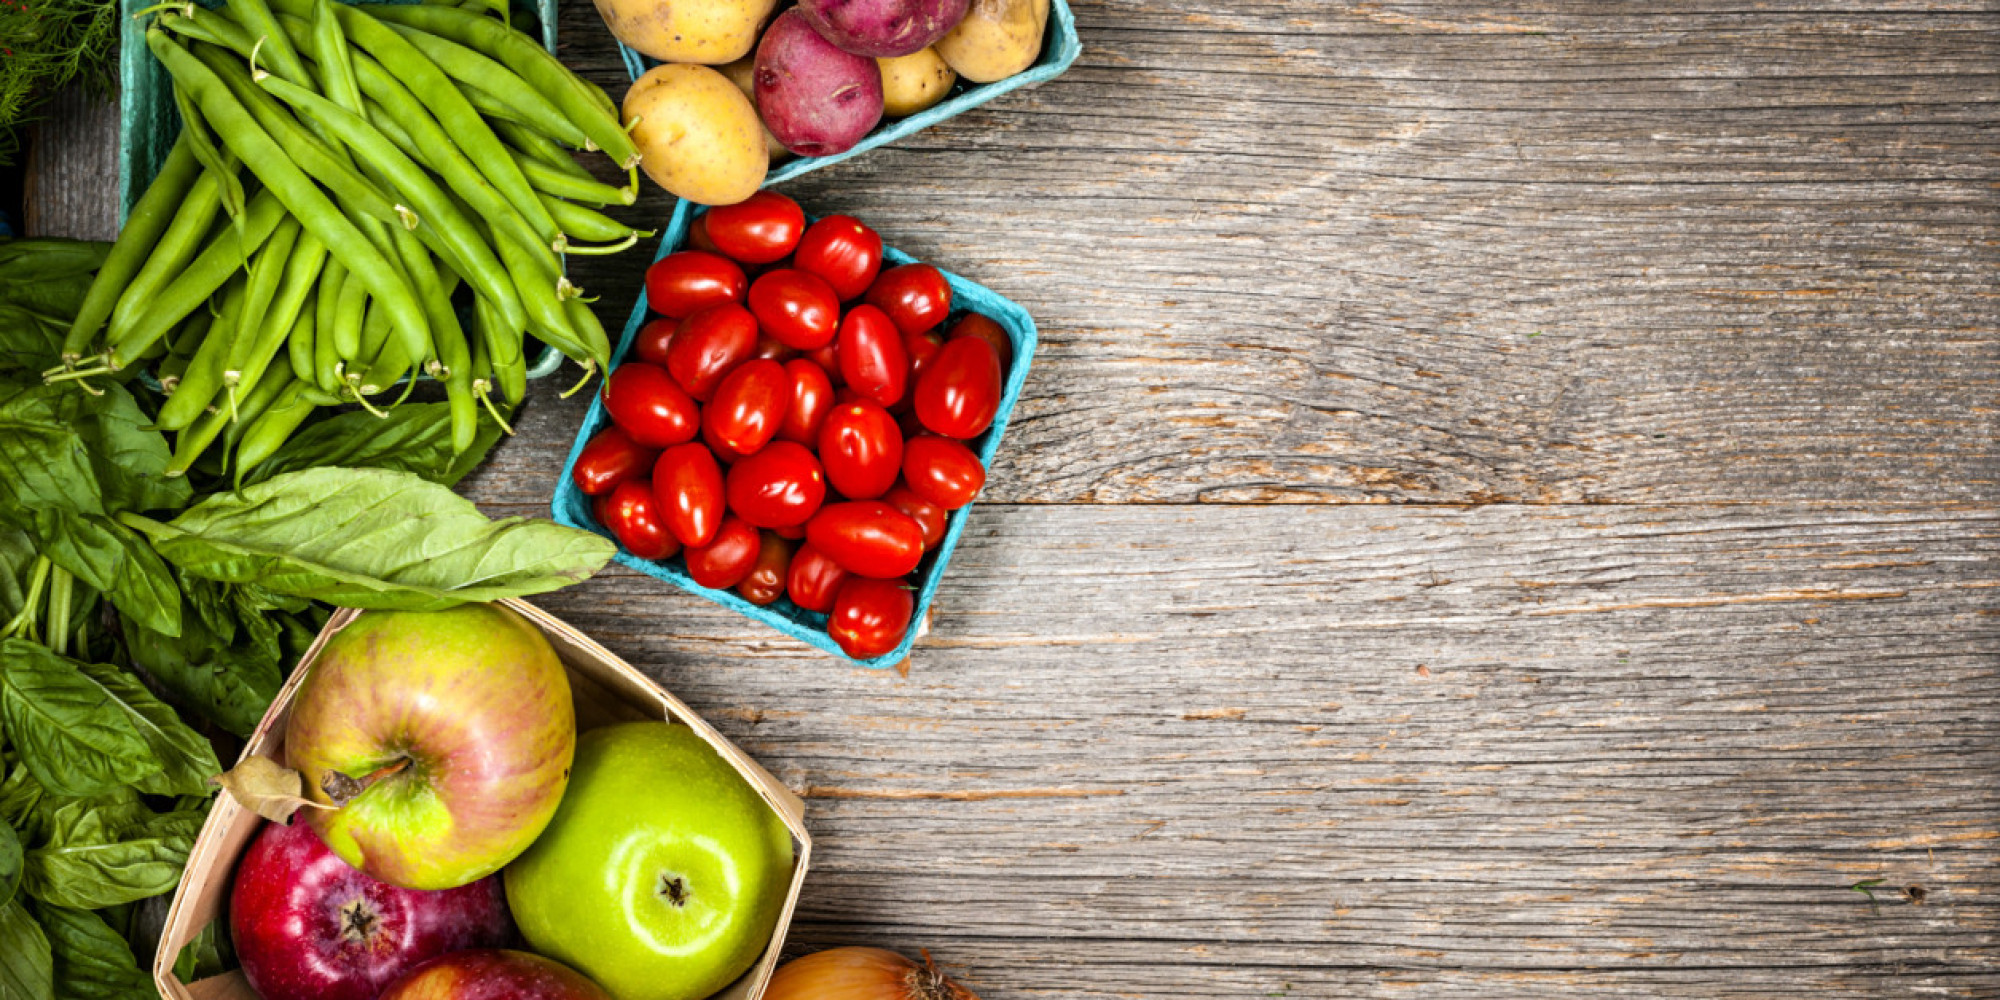 Where-to-Find-Organic-Food